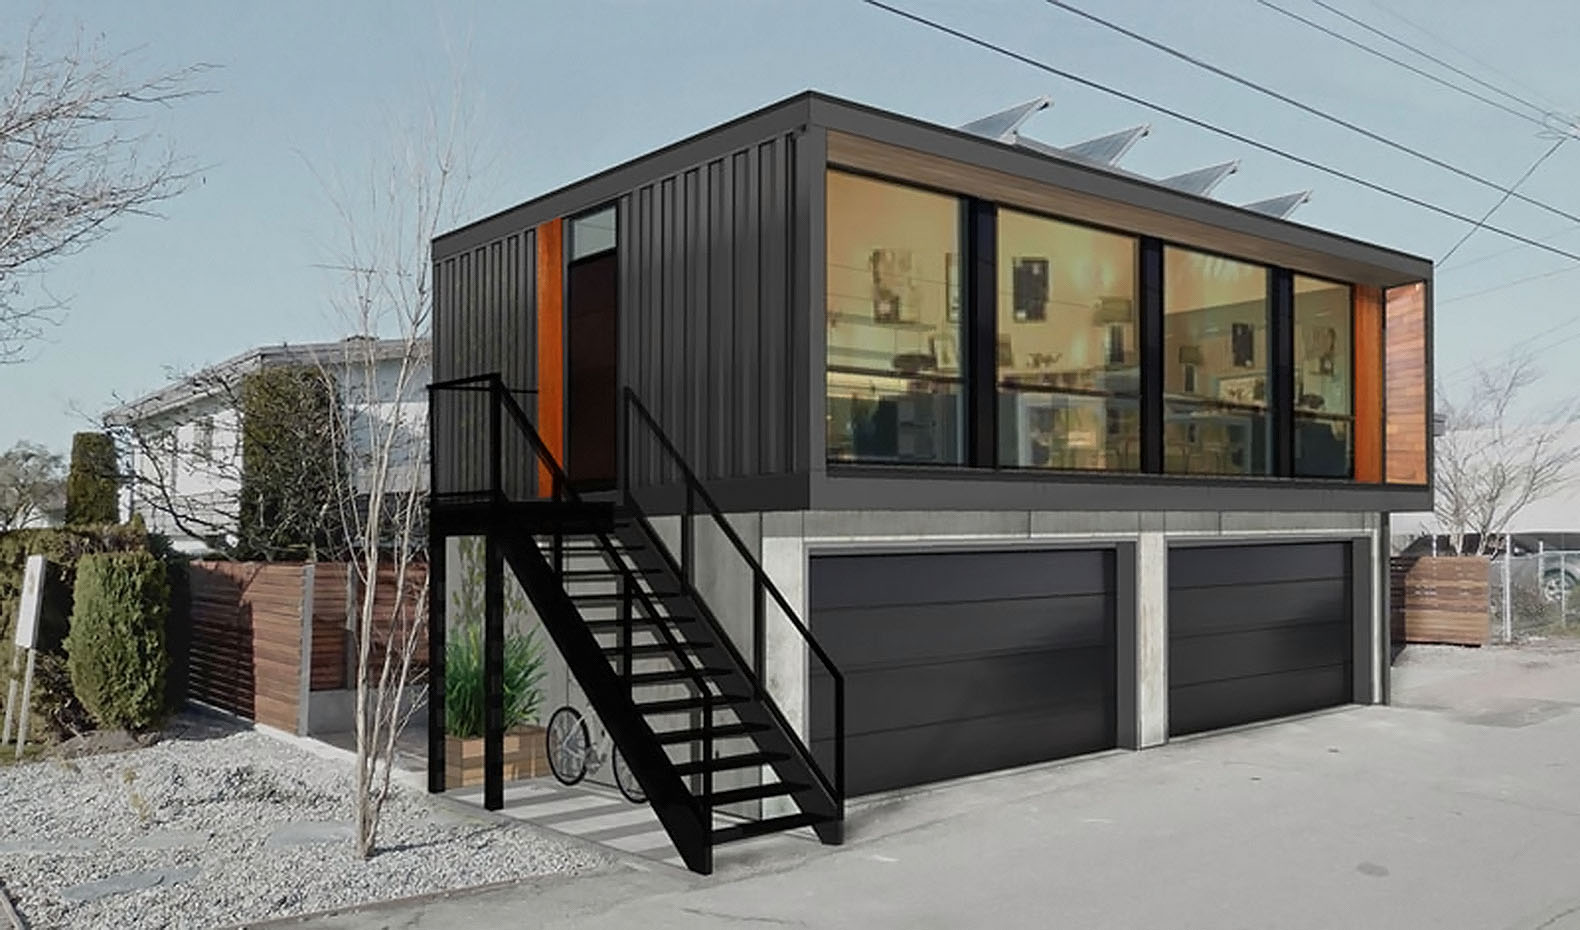 cargo crate homes low cost shipping container homes conex house shipping container home. Black Bedroom Furniture Sets. Home Design Ideas